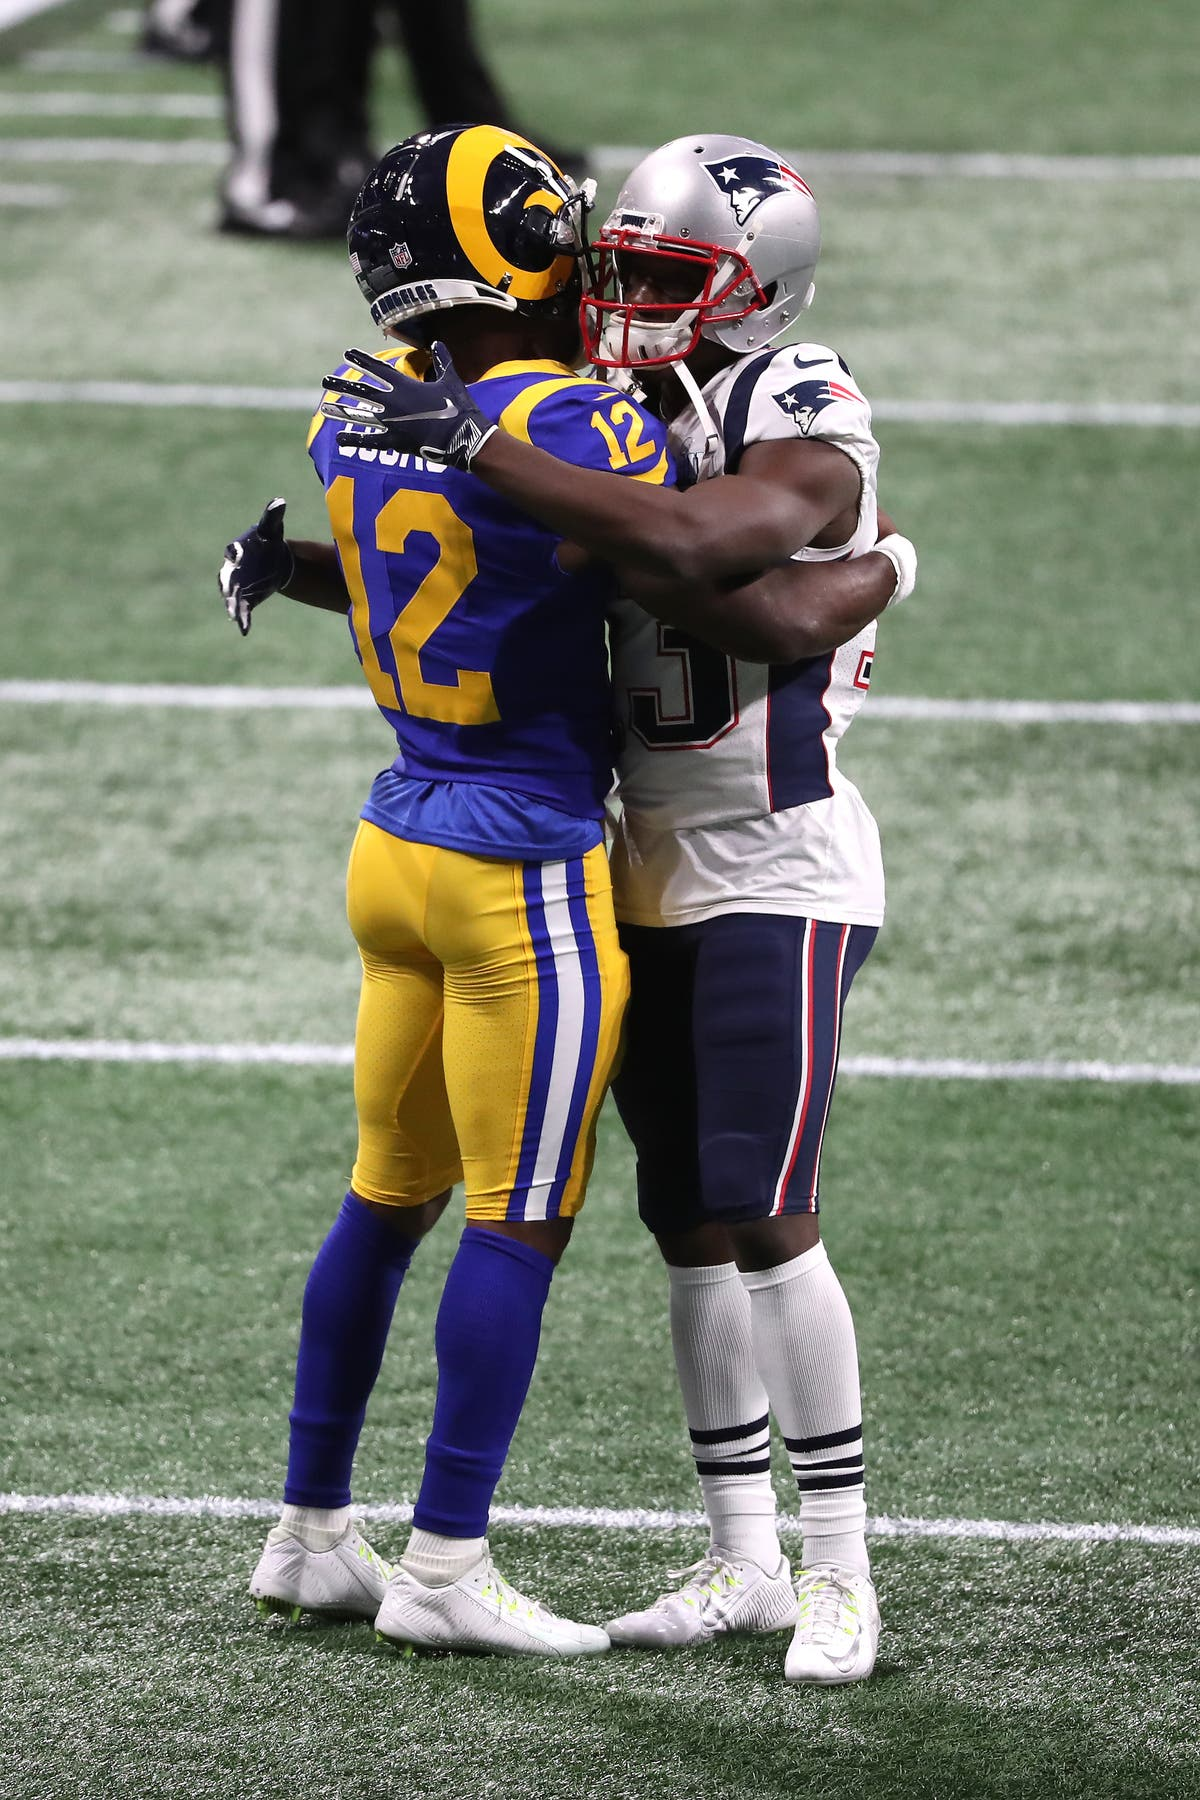 Best Super Bowl LIII Moments: See Patriots vs. Rams in Photos